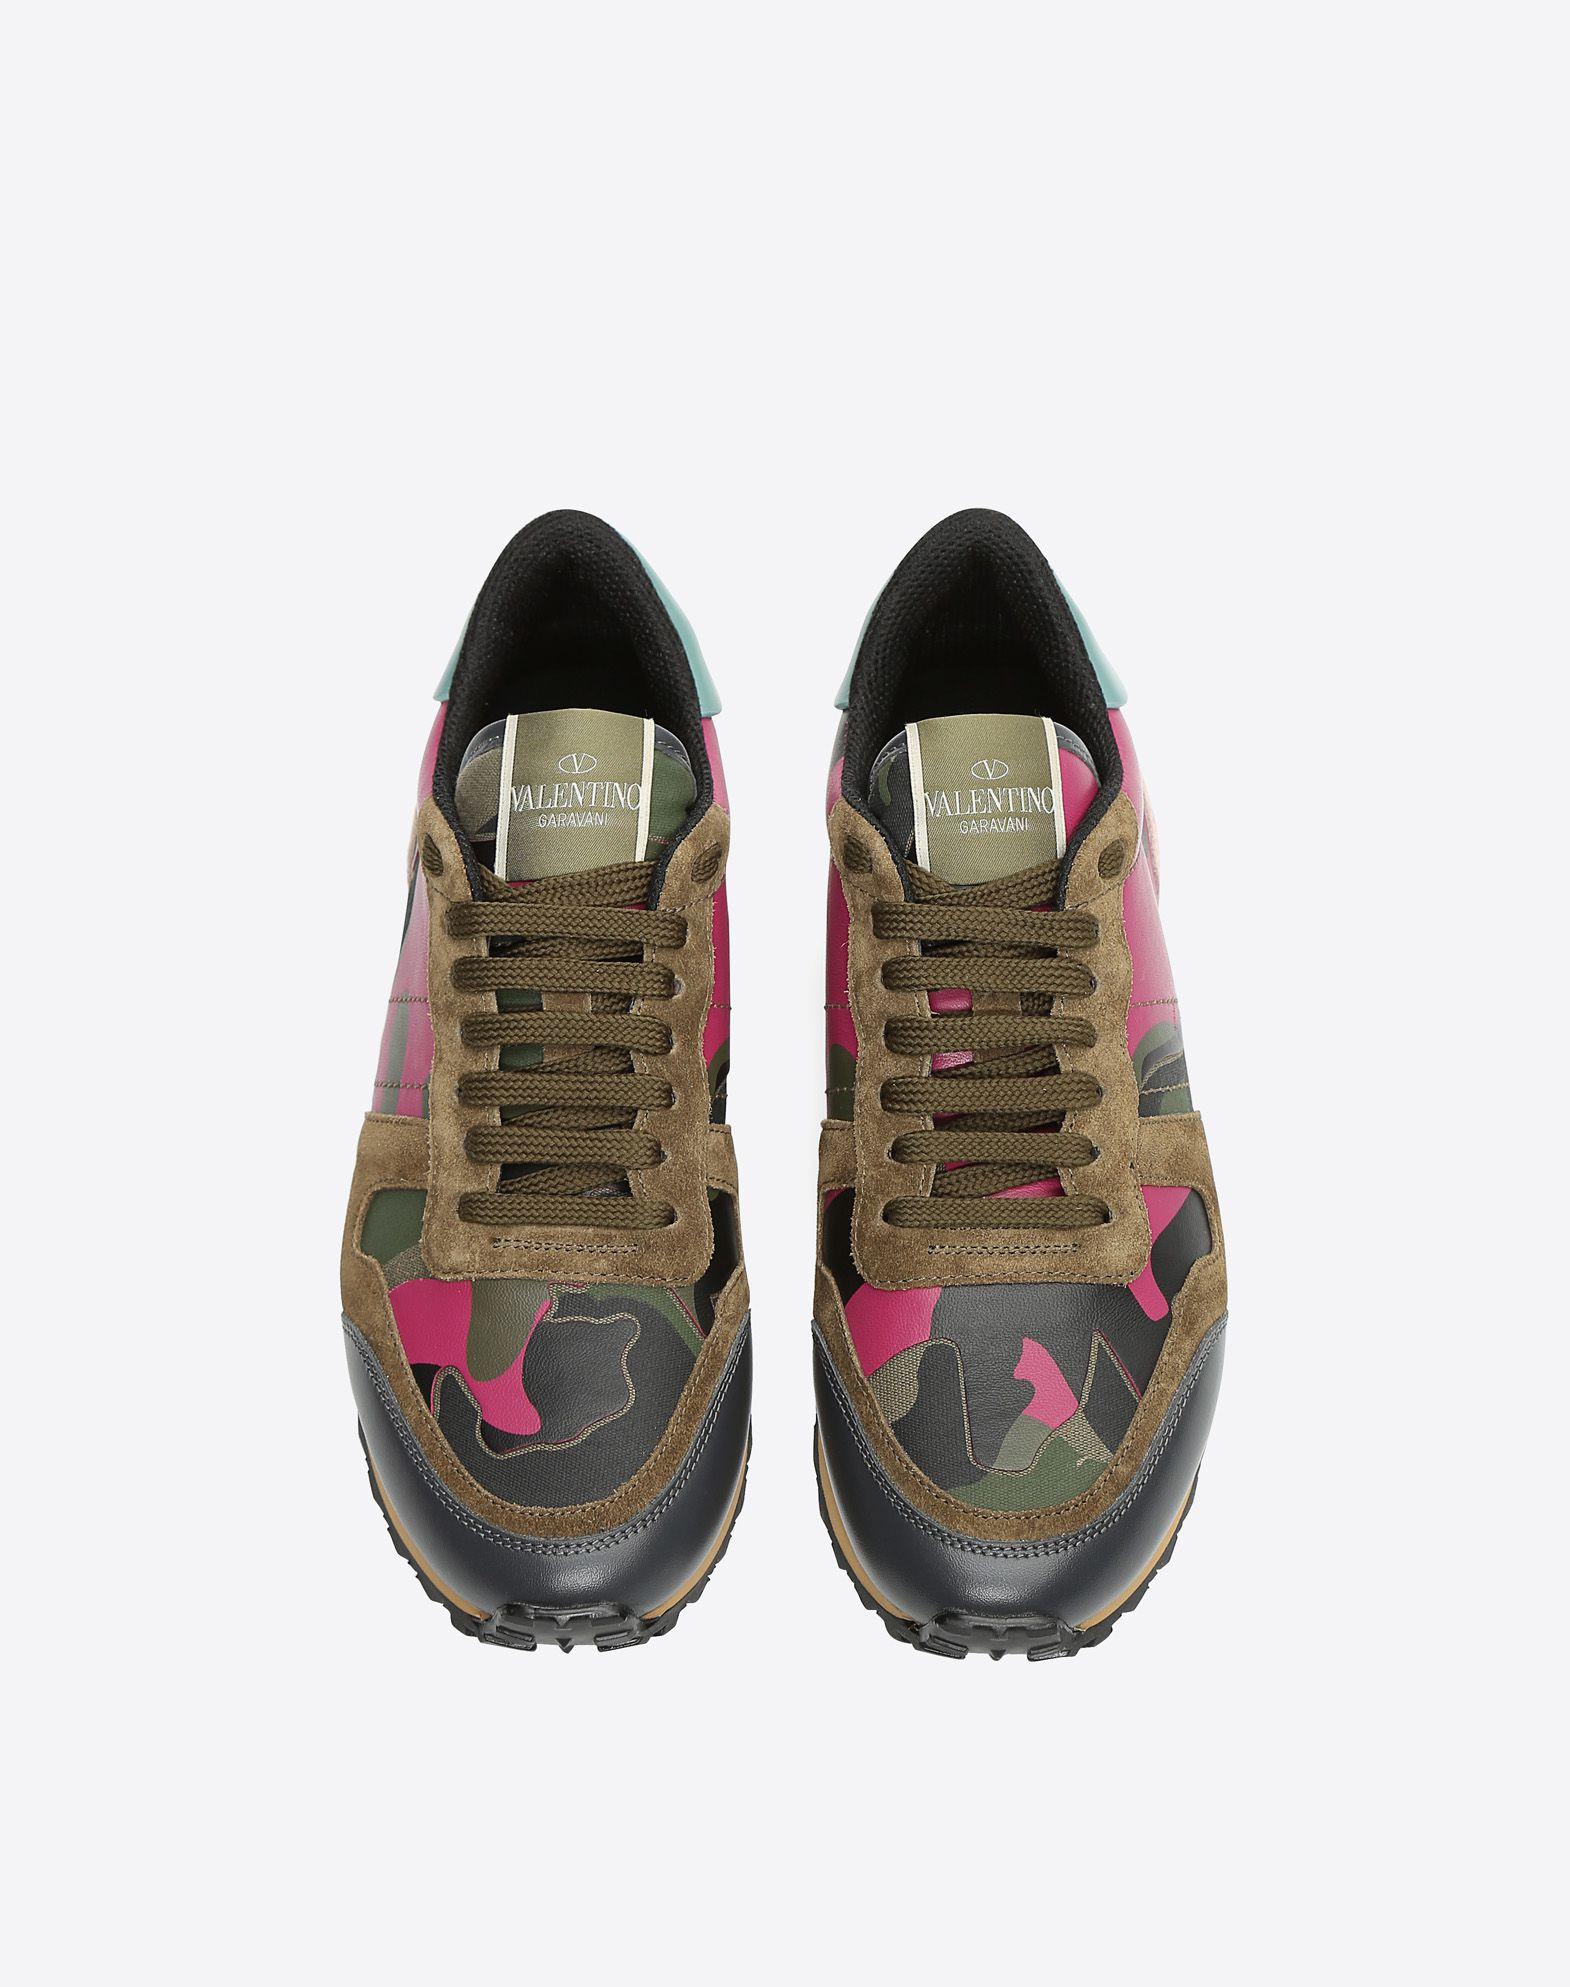 Valentino Women's Camouflage Low Top Sneaker